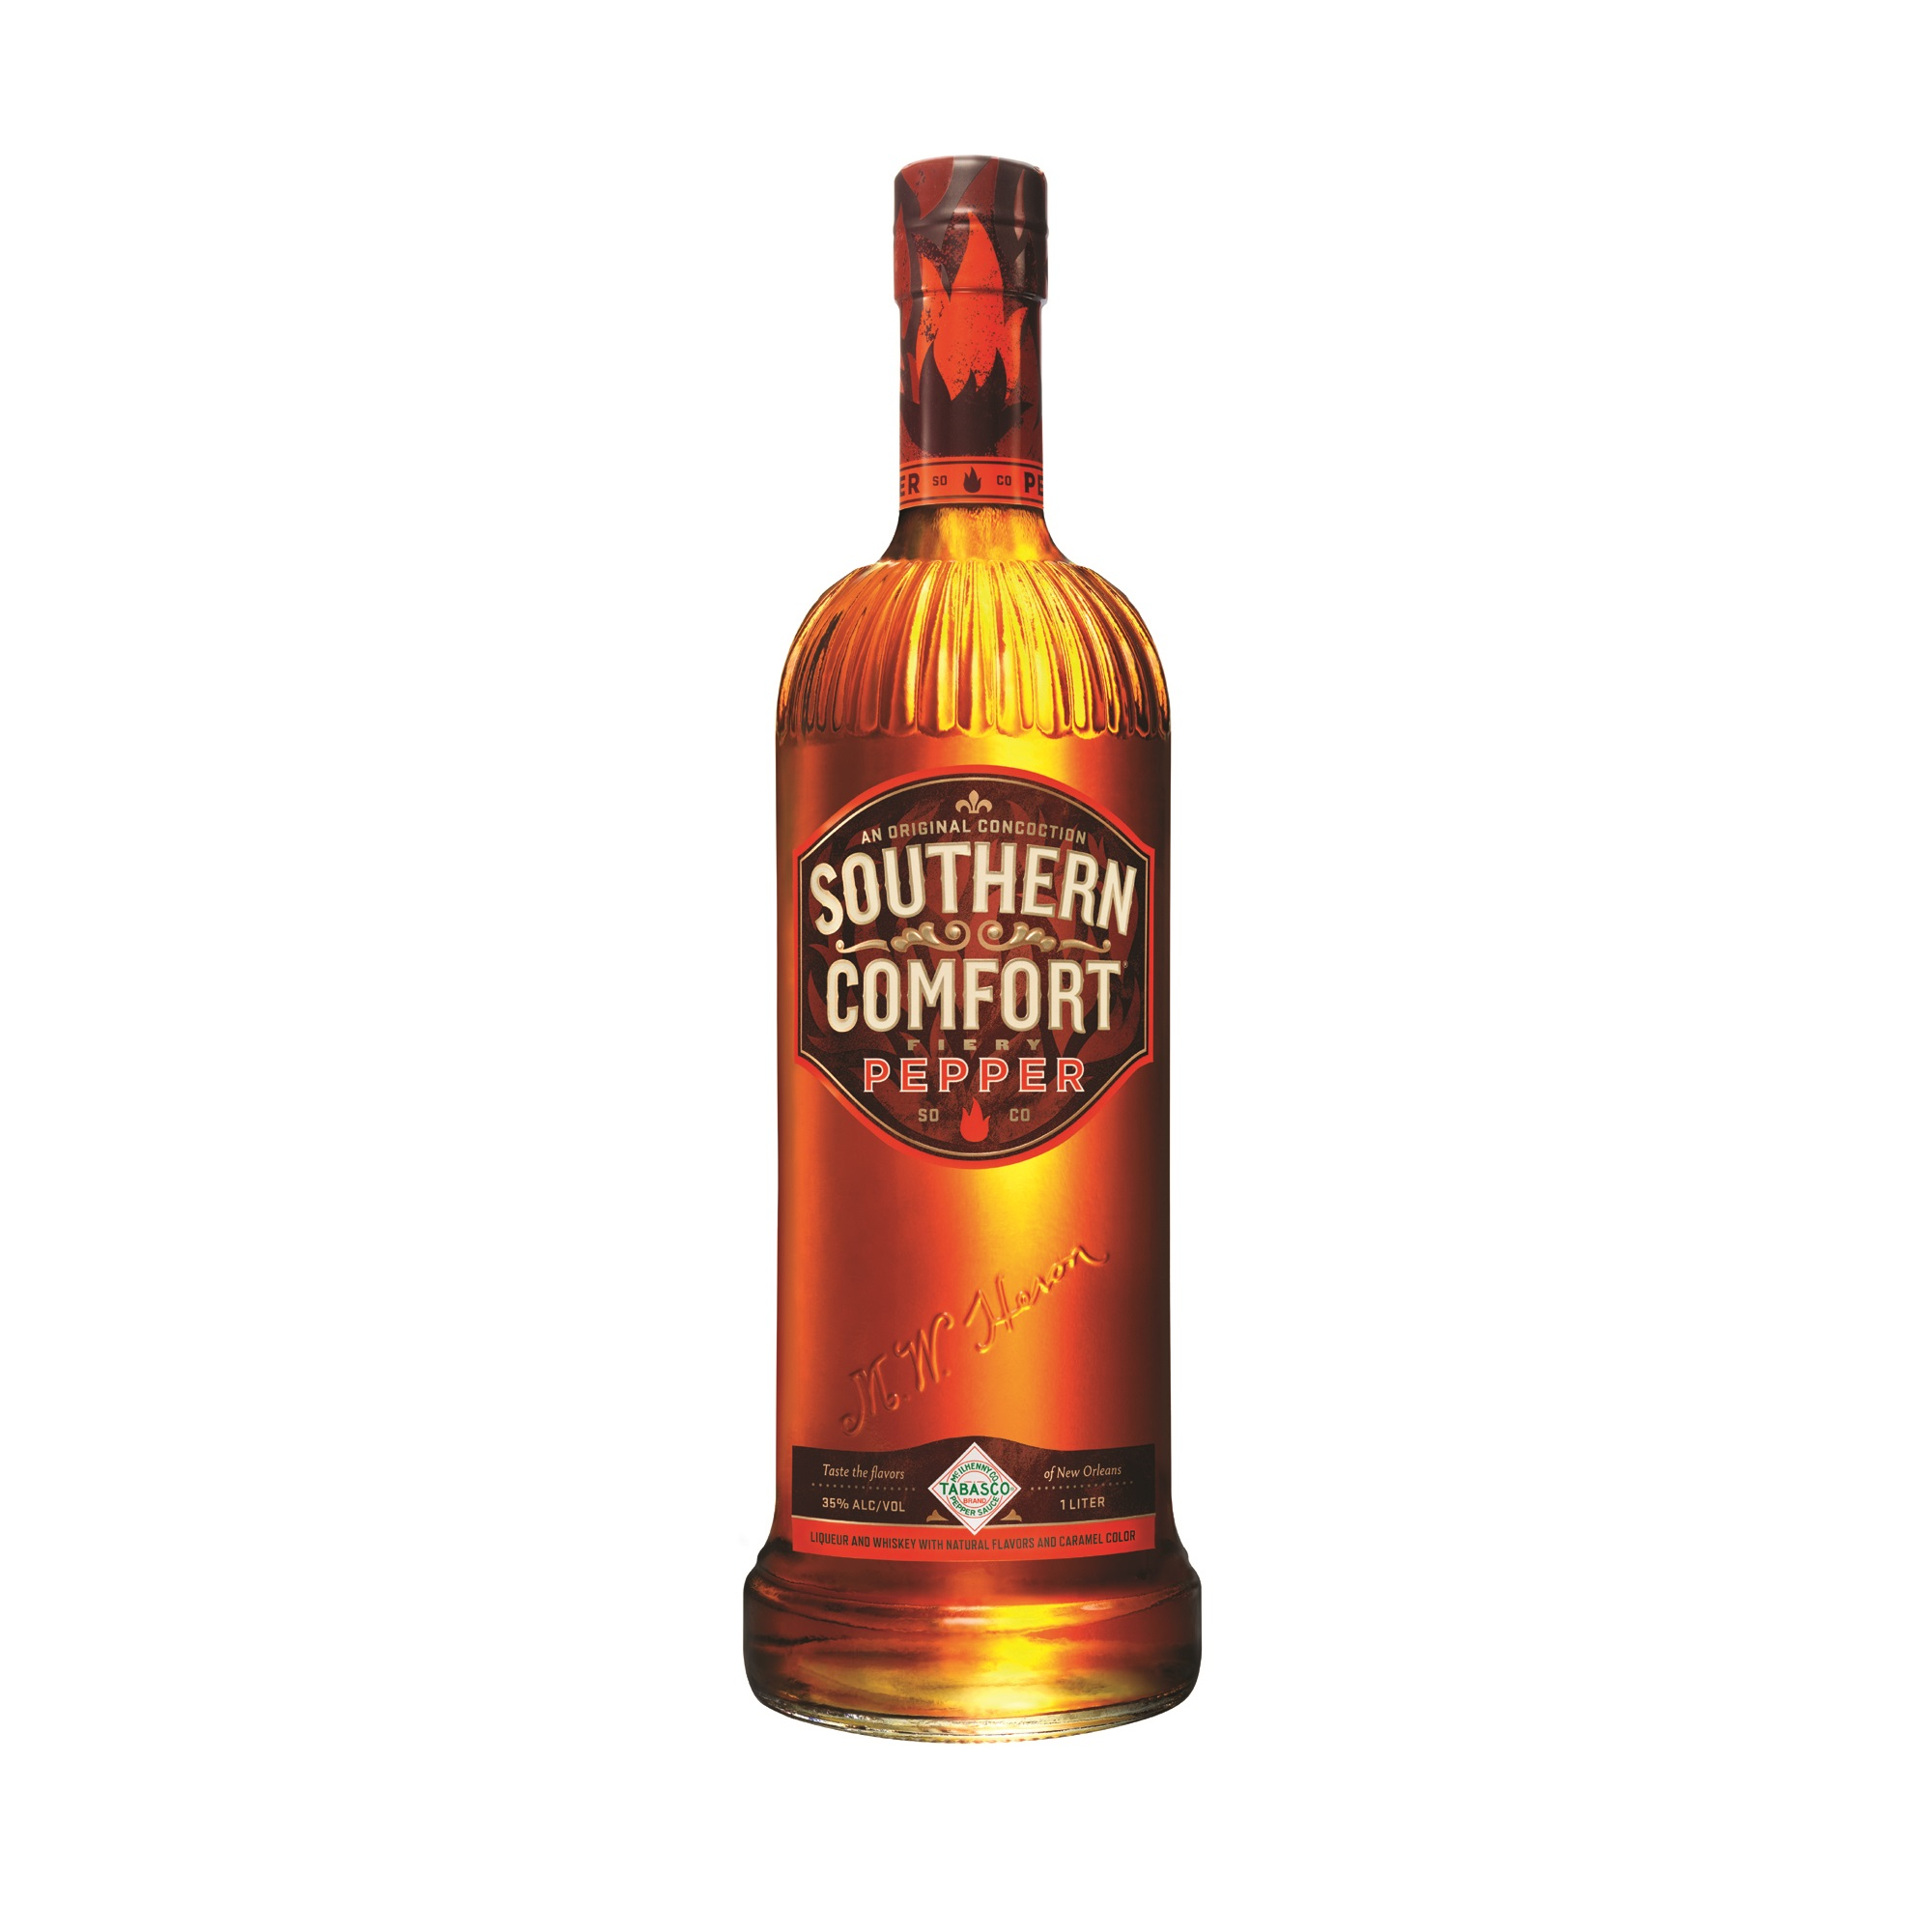 Southern Comfort Pepper 750ml   On Deep Sale/ Was 17.99   Only  $9.99